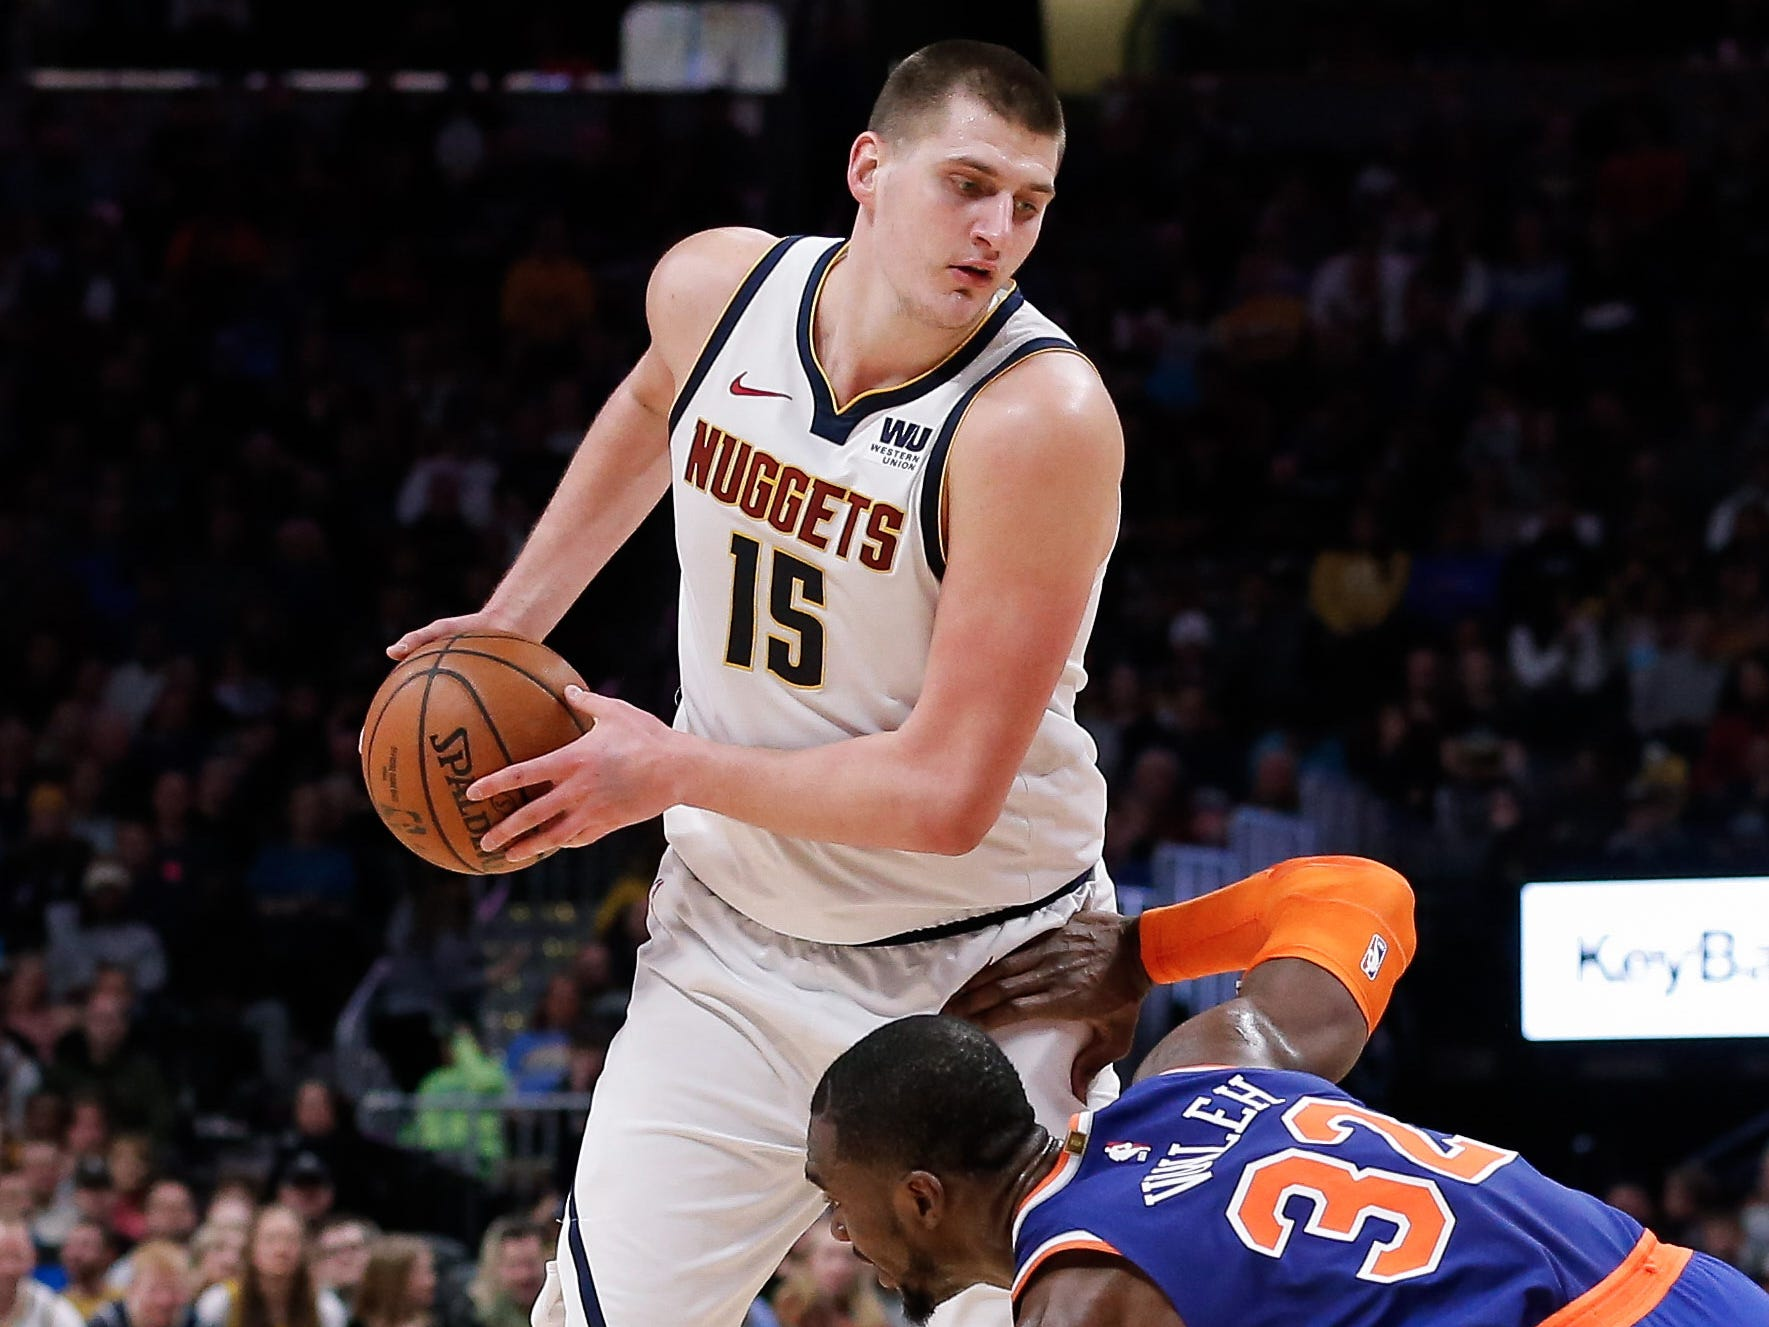 40. Nikola Jokic, Nuggets (Jan. 1): 19 points, 14 rebounds, 15 assists in 115-108 win over Knicks (third of season).